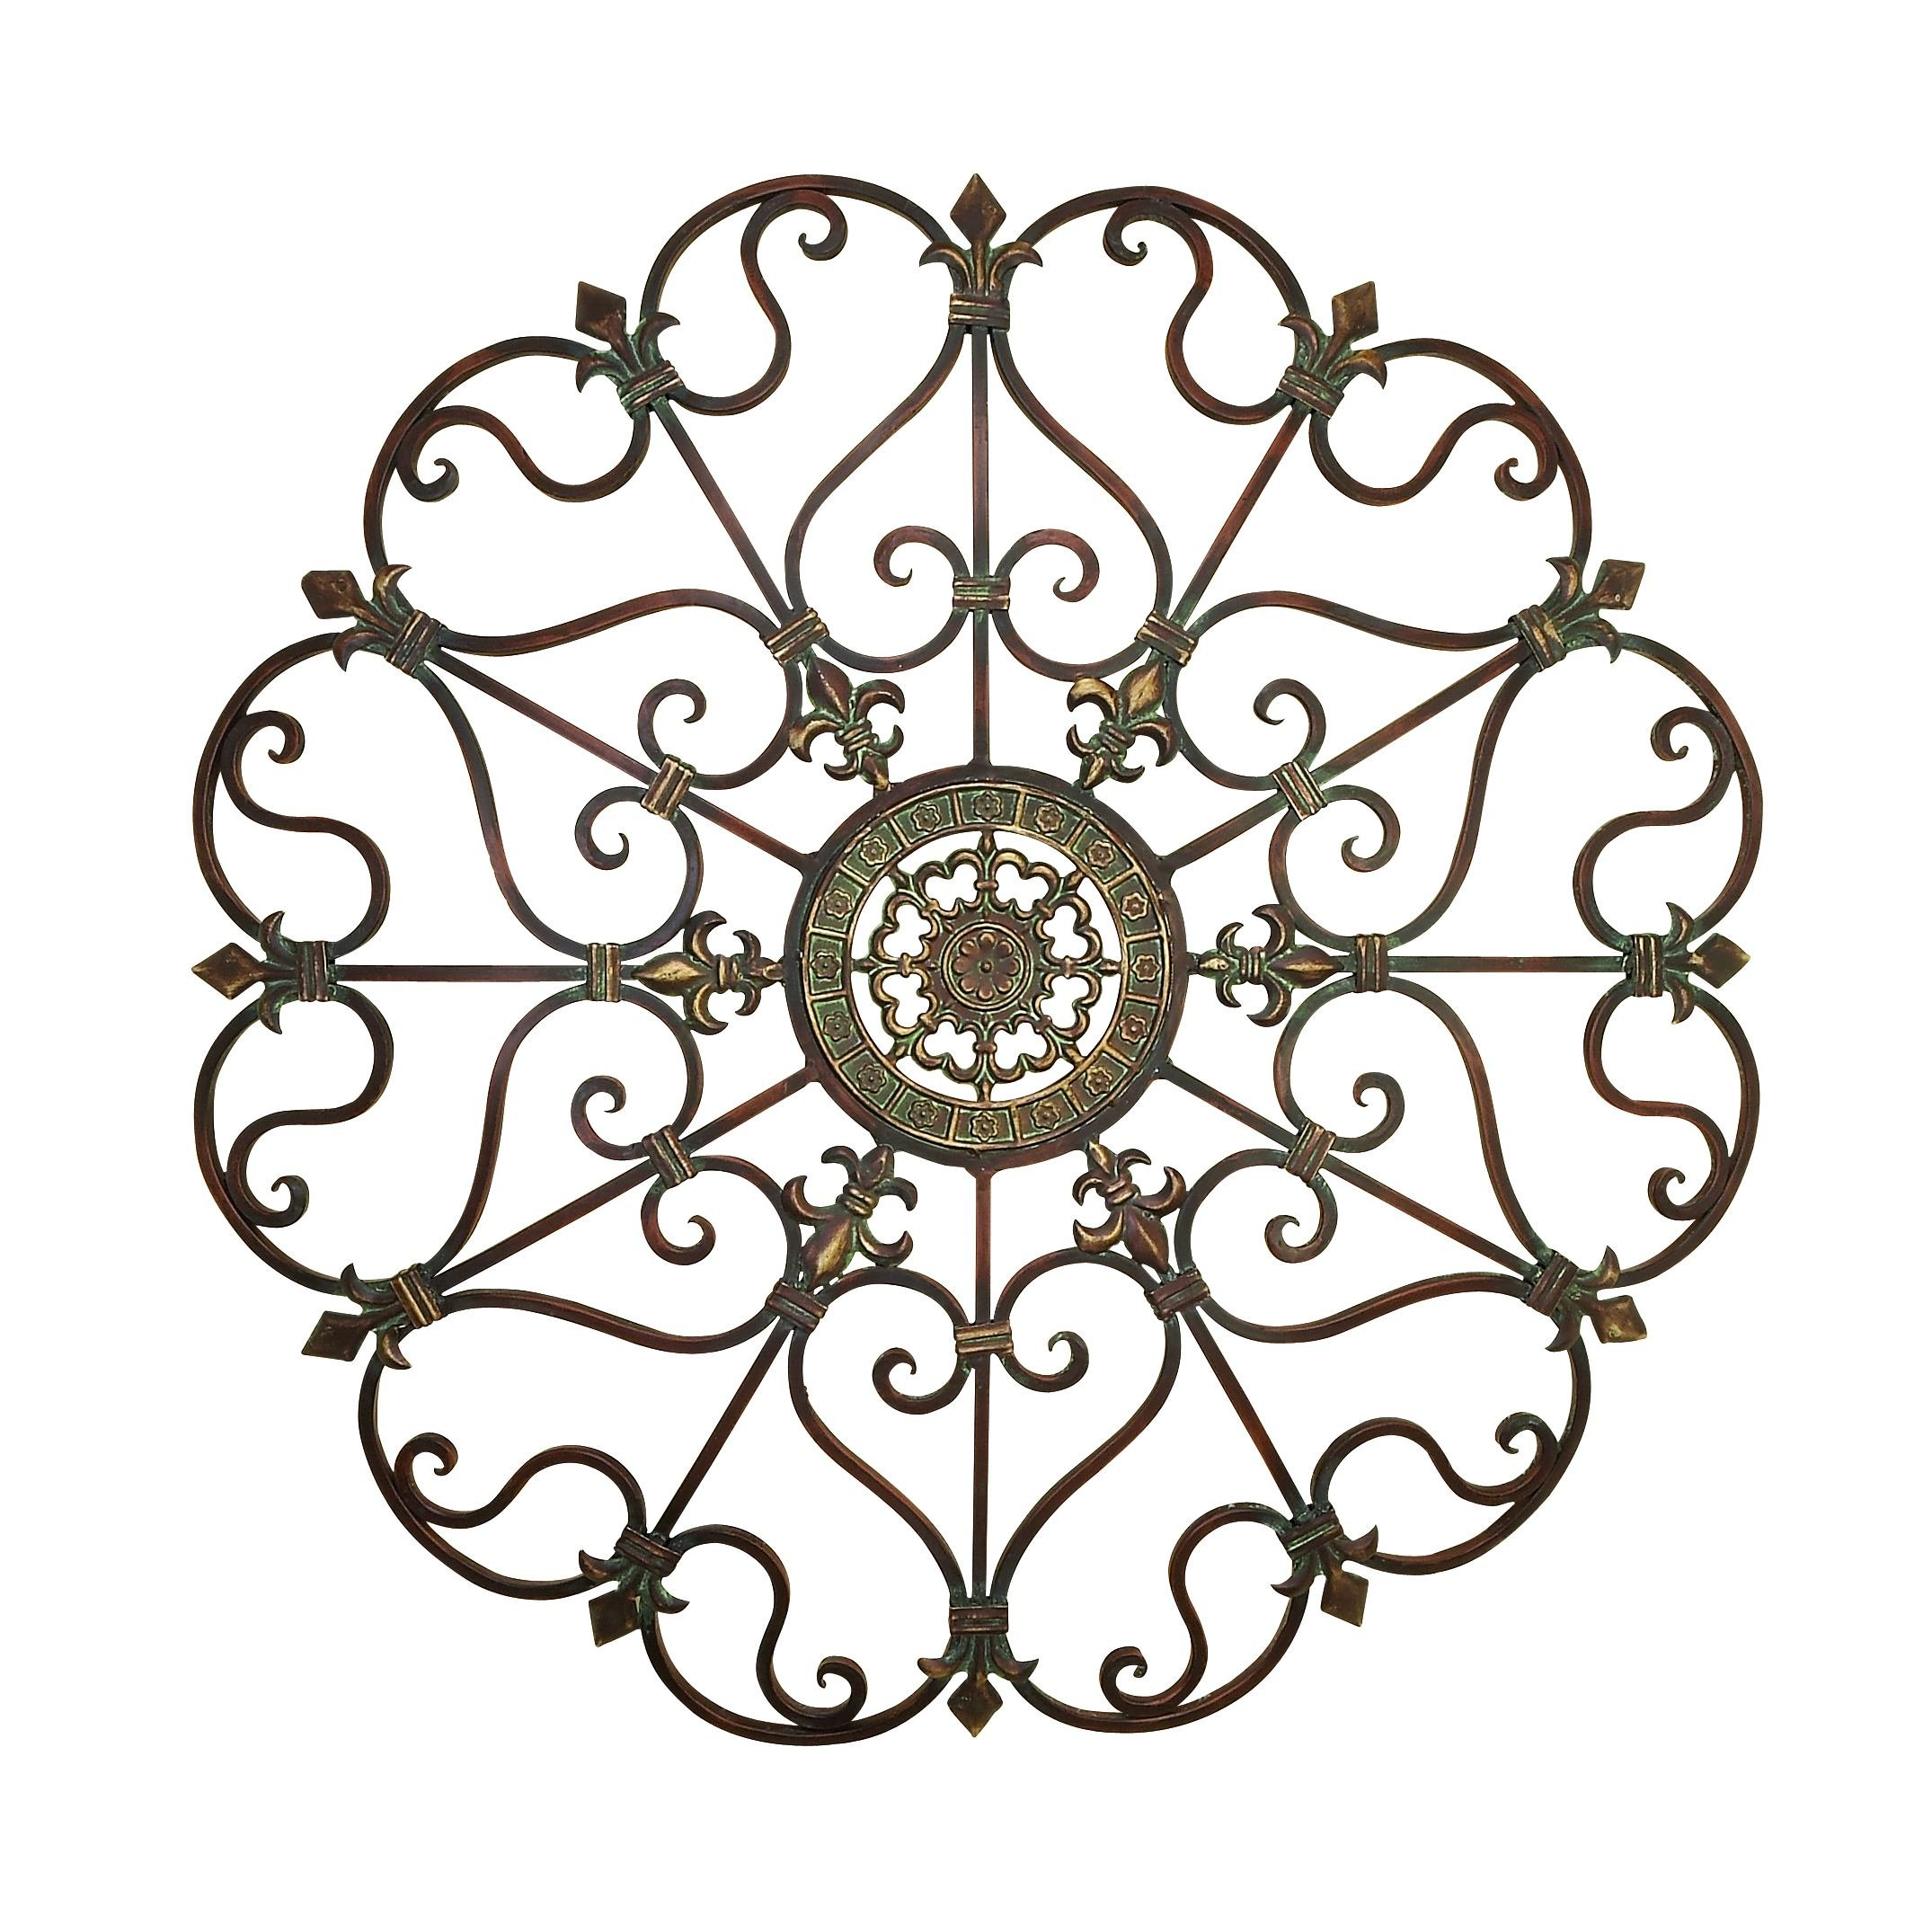 Deco 79 50094 Large, Round Bronze Metal Snowflake w/Fleur De Lis Designs, Vintage, Holiday Decorations, Christmas Wall Art, x 29 Diameter, Distressed by Deco 79